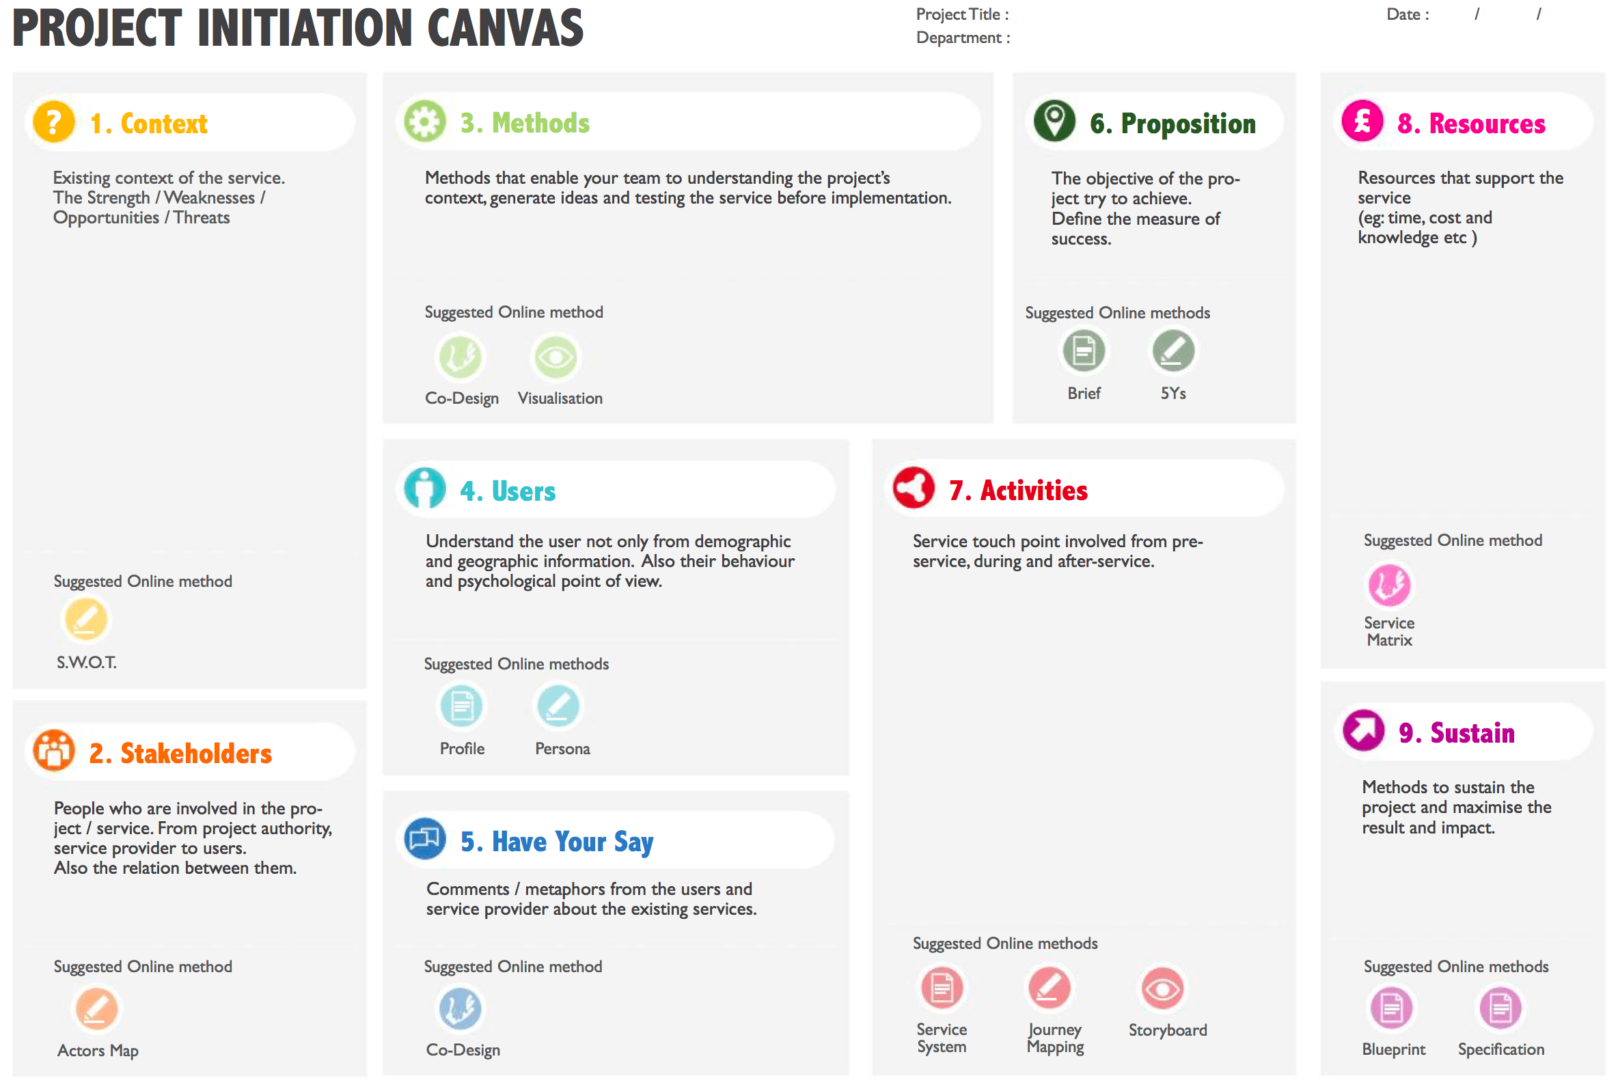 Project Initiation Canvas